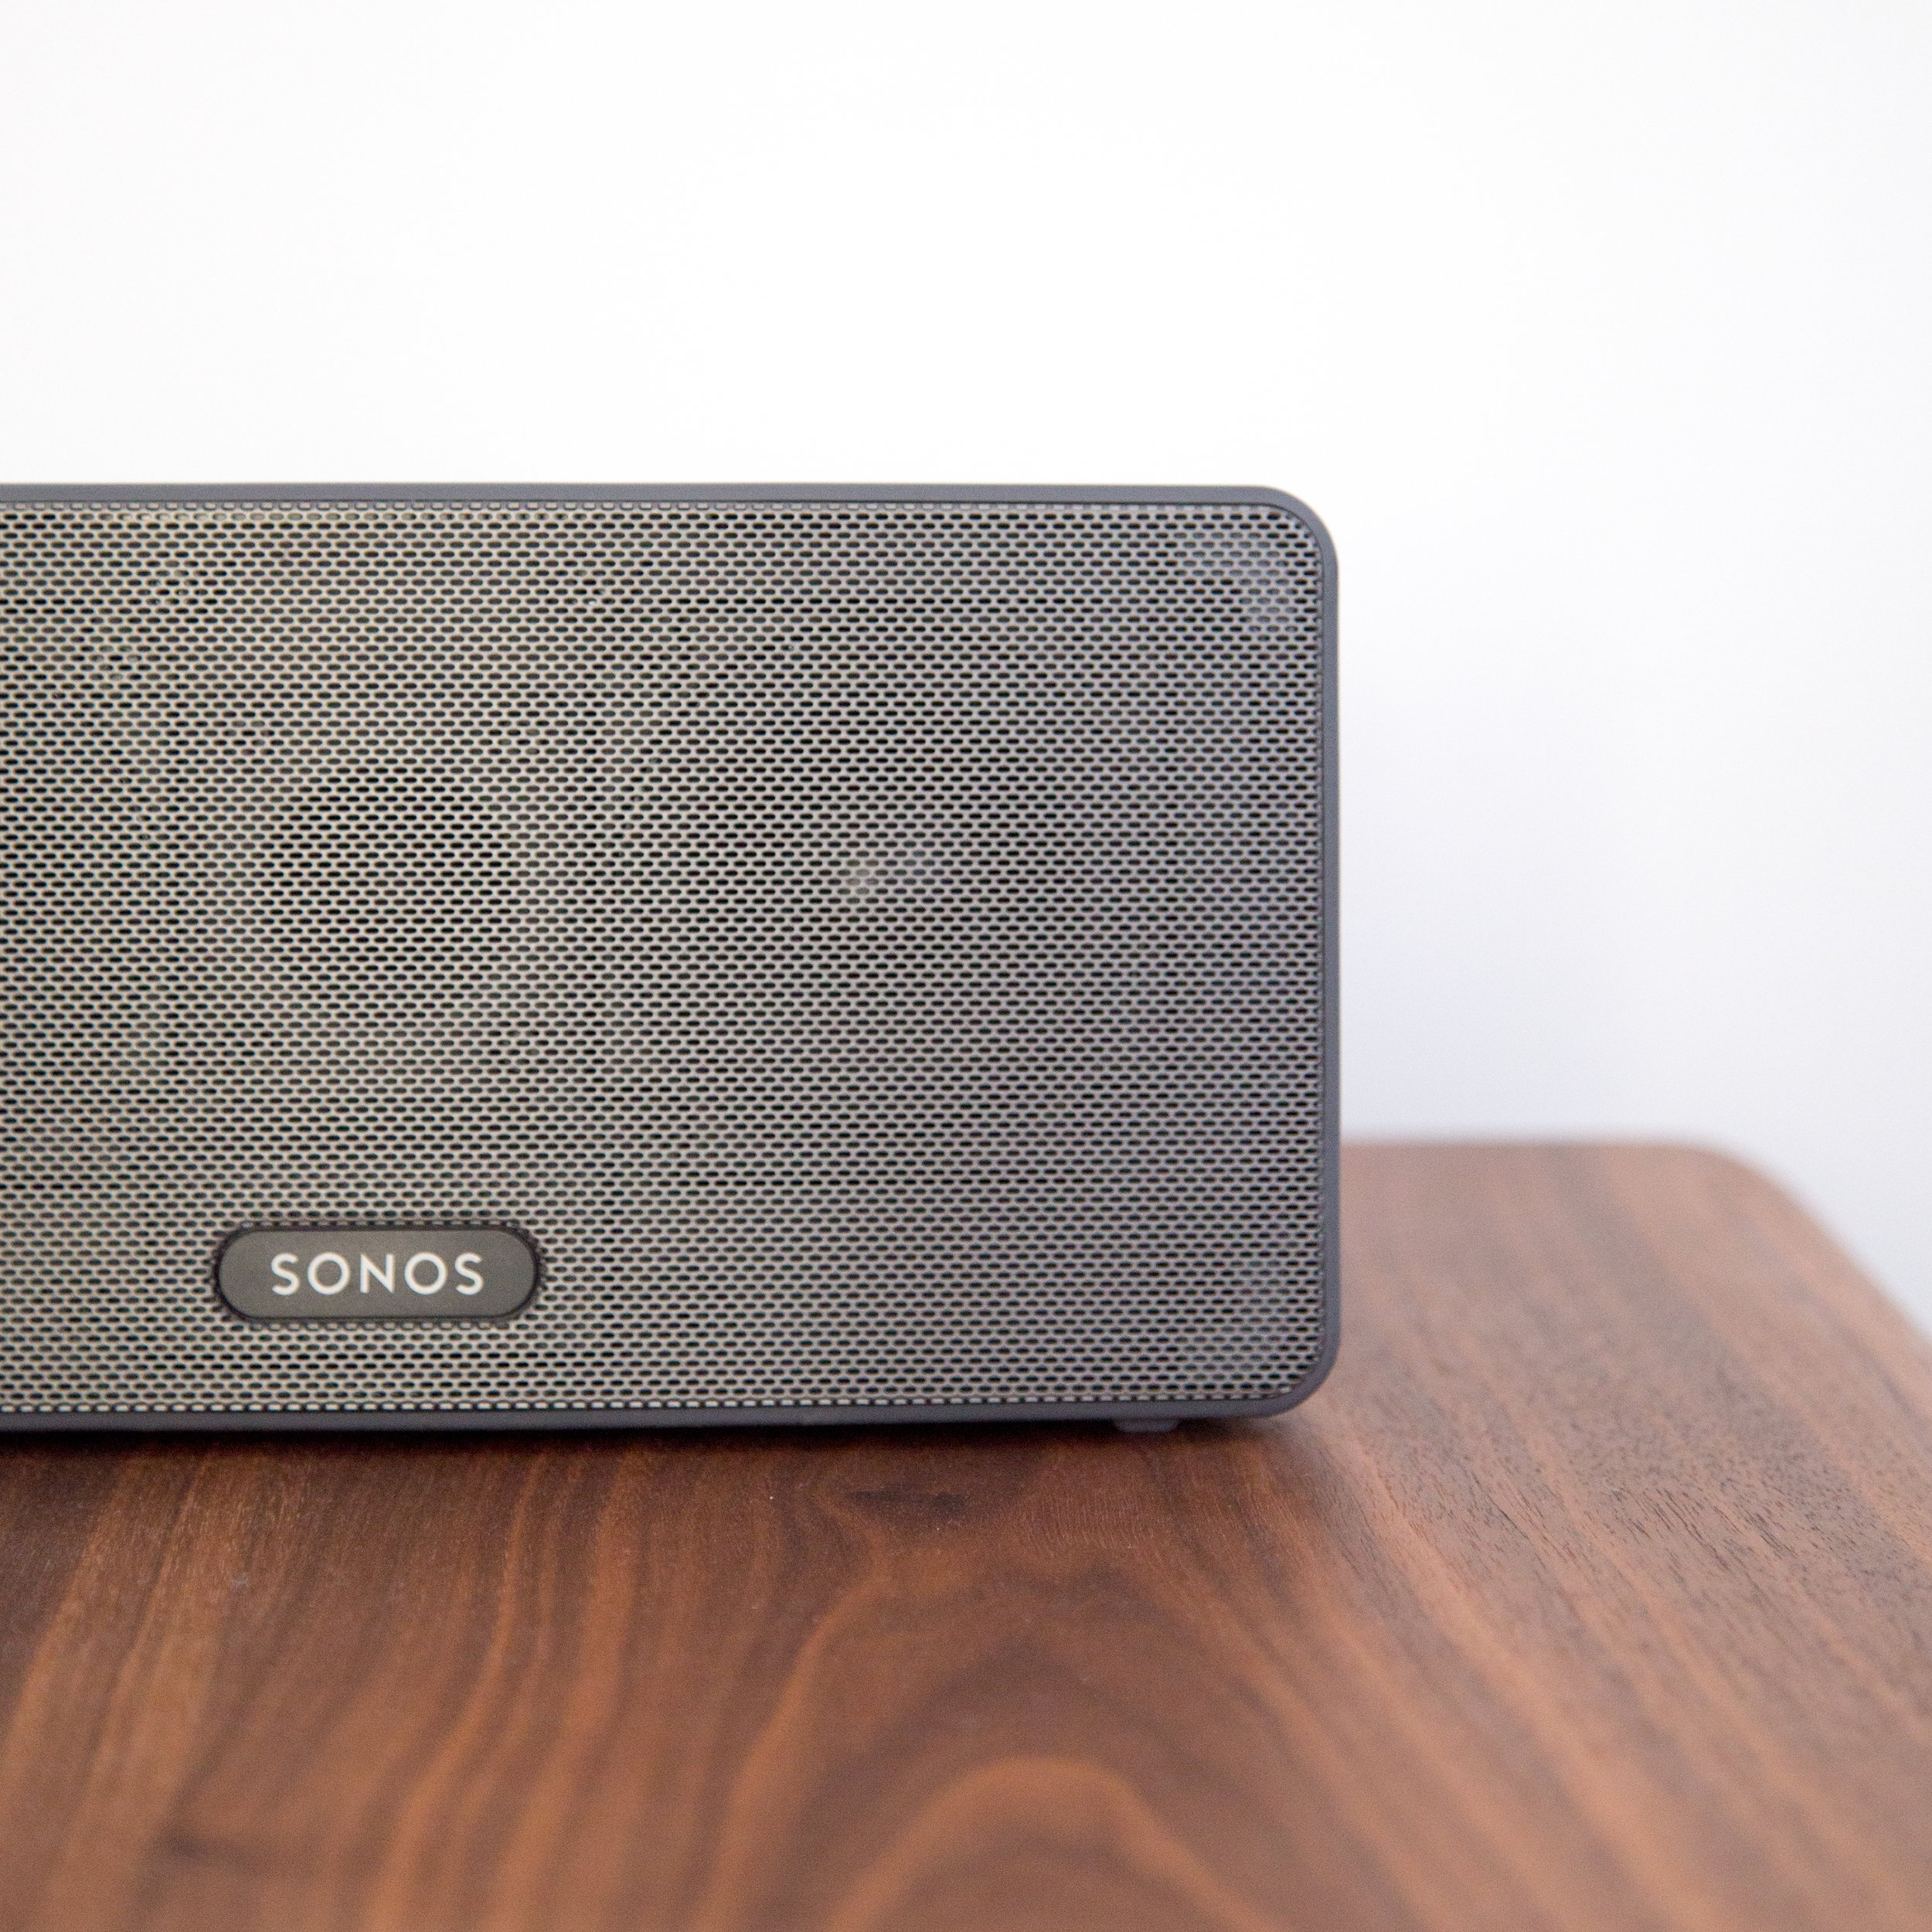 Wireless Music Streaming Indoors and Outdoors - Gone are the days when you needed to invest in expensive stereo systems and have speakers installed all over your home. You don't even have to purchase music anymore, you can stream it for free. We have found some really great wireless speakers that connect seamlessly to your phone or your Amazon Alexa and can play any type of music you desire w/ a verbal command. You won't believe the sound quality and how easy they are to use!